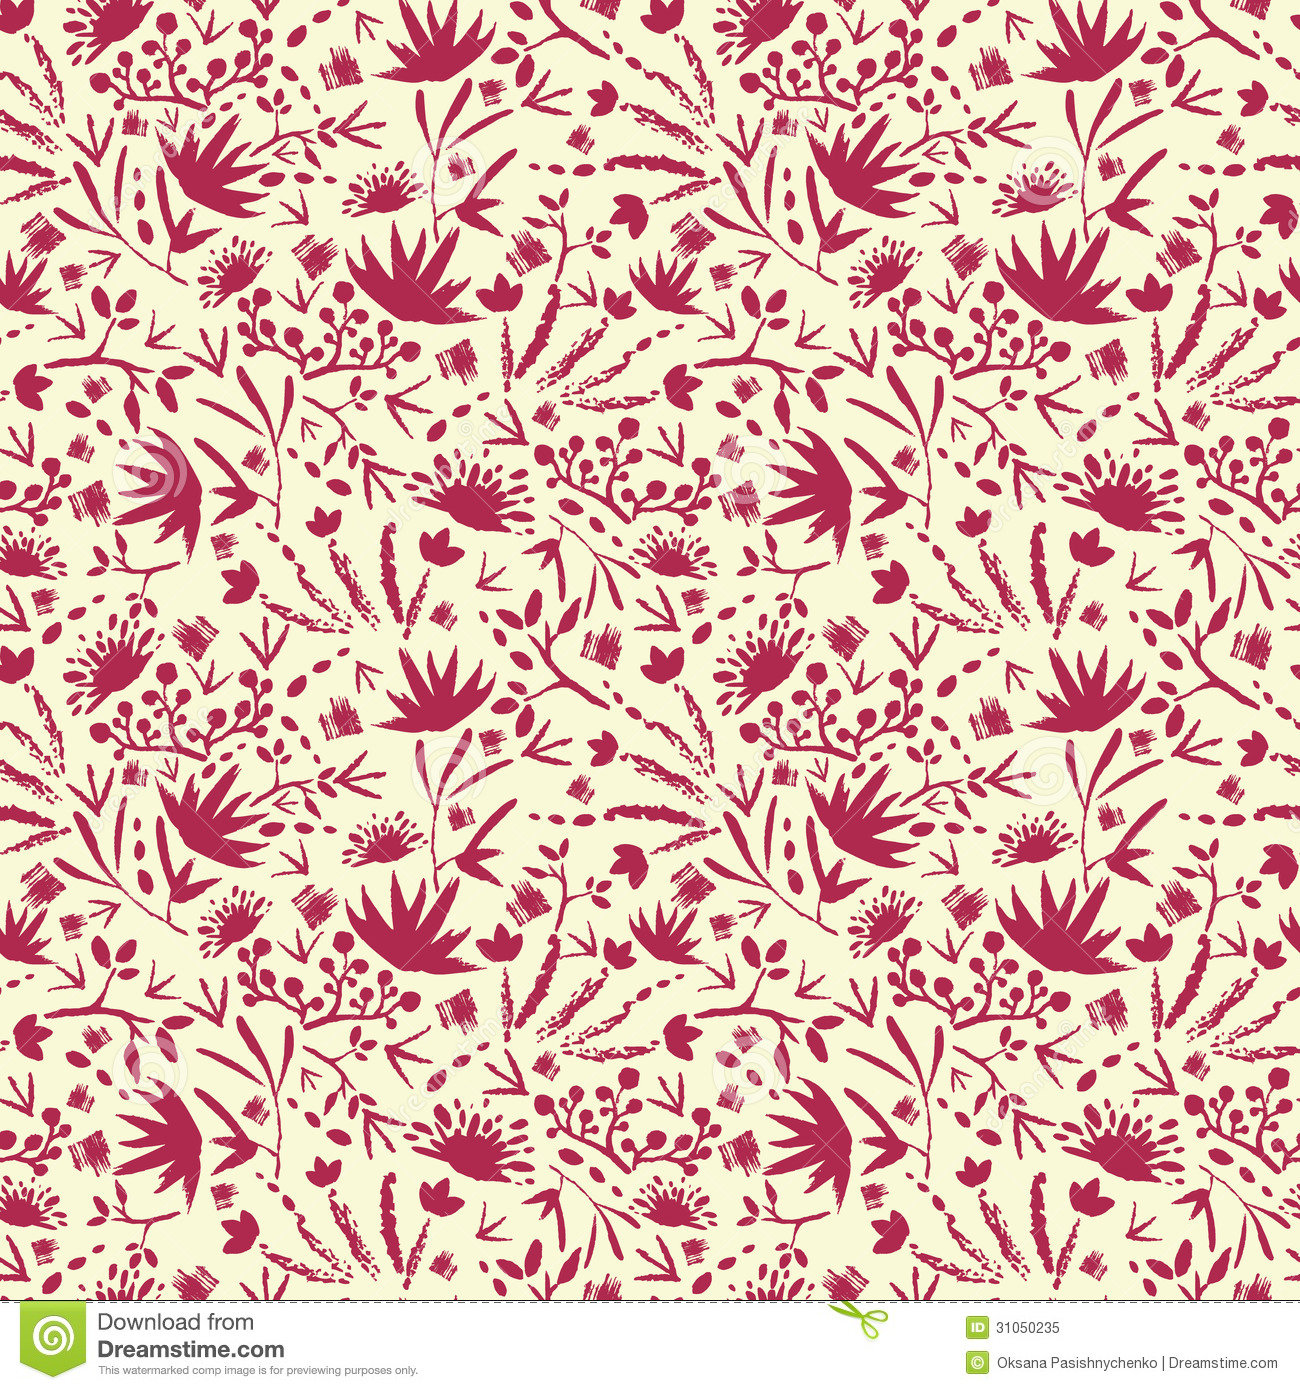 Abstract Flower Background With Decoration Elements For: Painted Abstract Florals Seamless Pattern Royalty Free